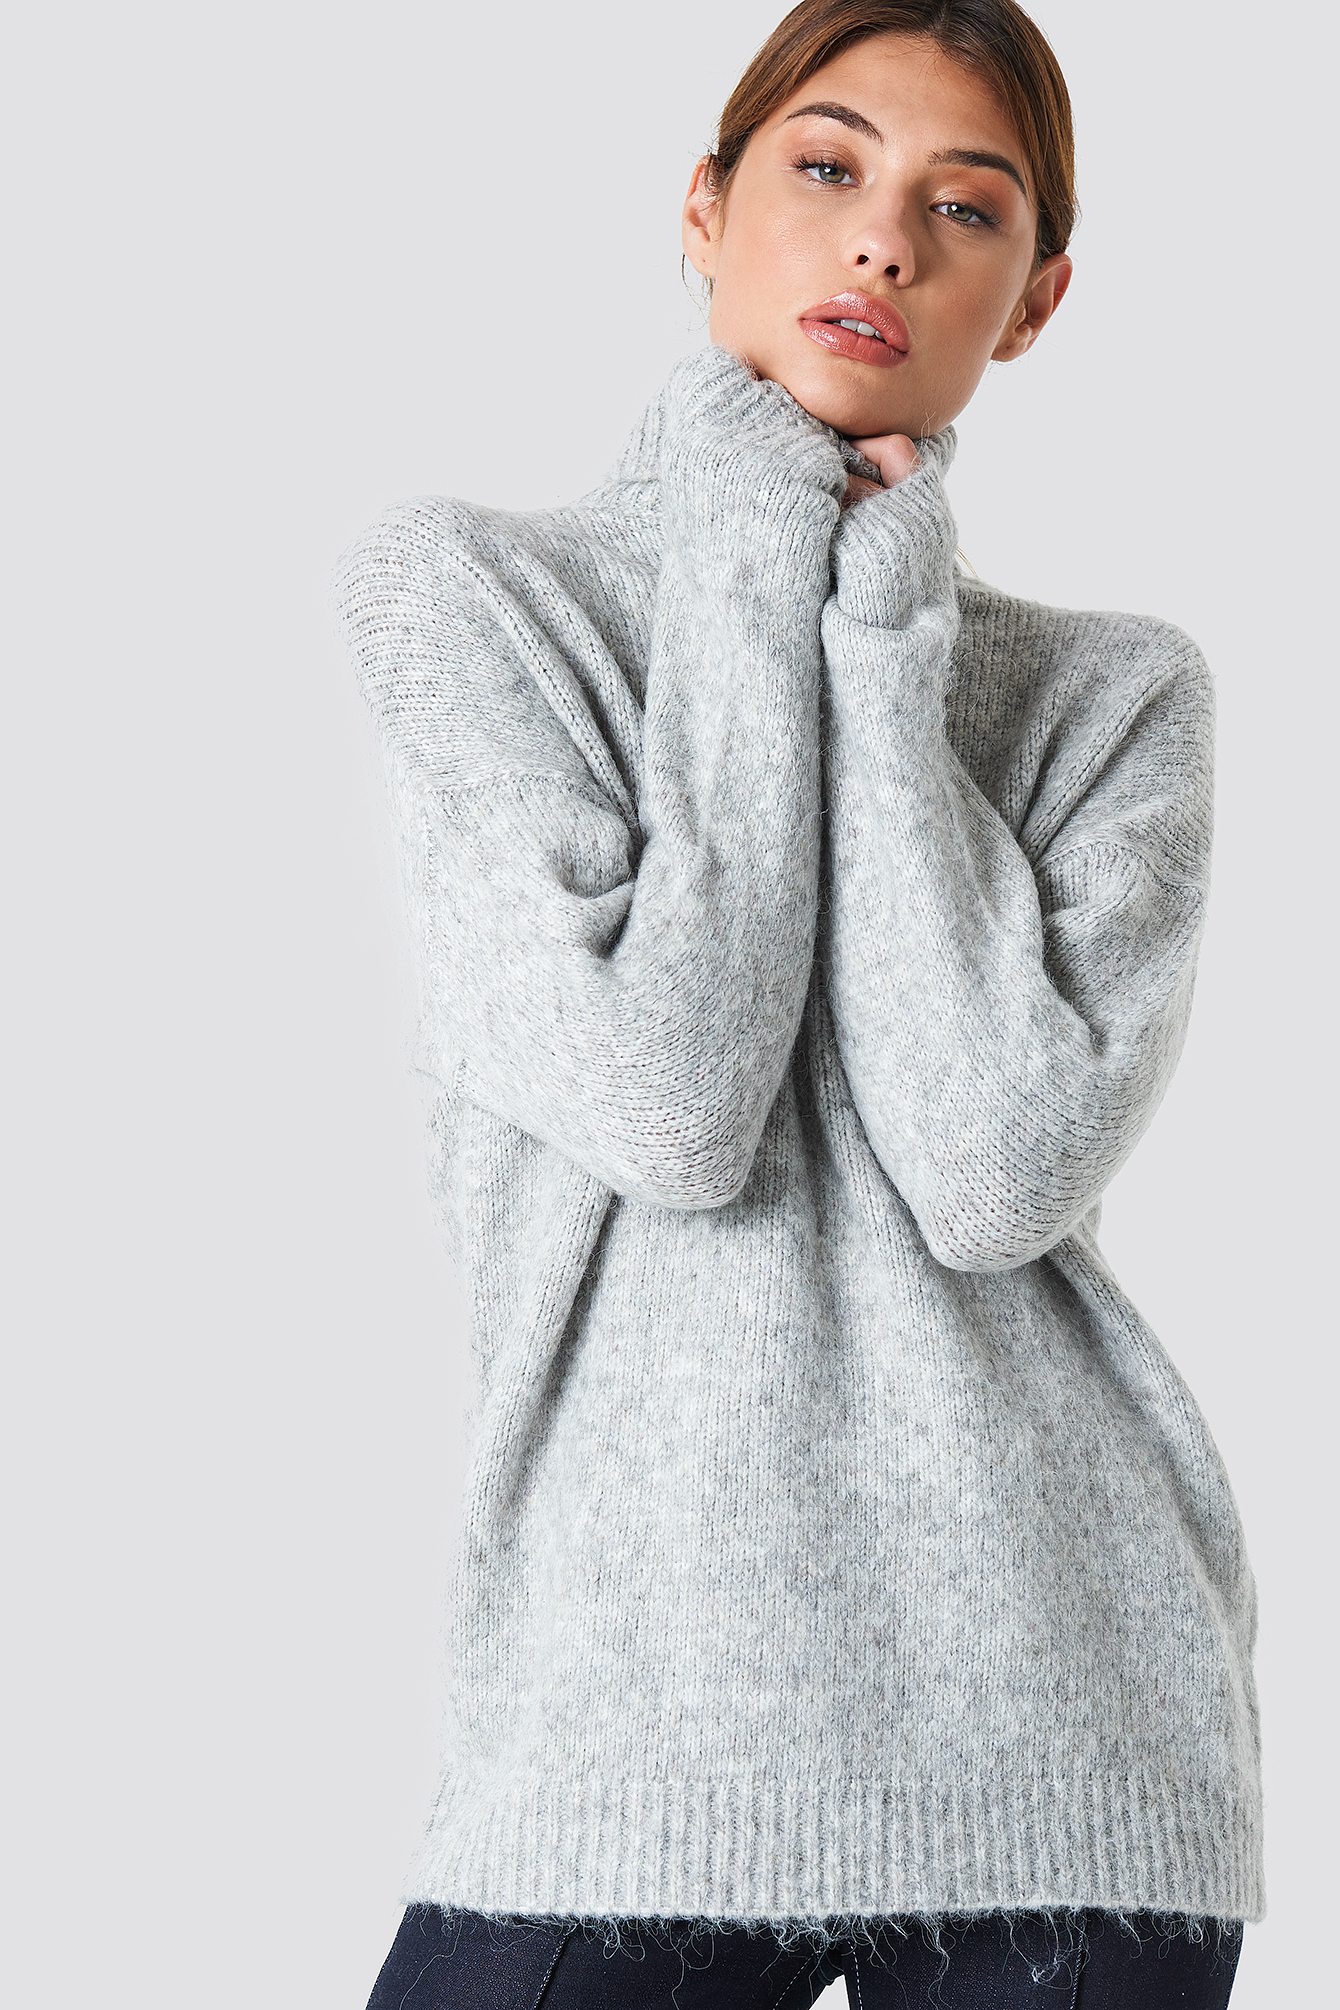 NA-KD Folded Oversized Knitted Sweater - Grey